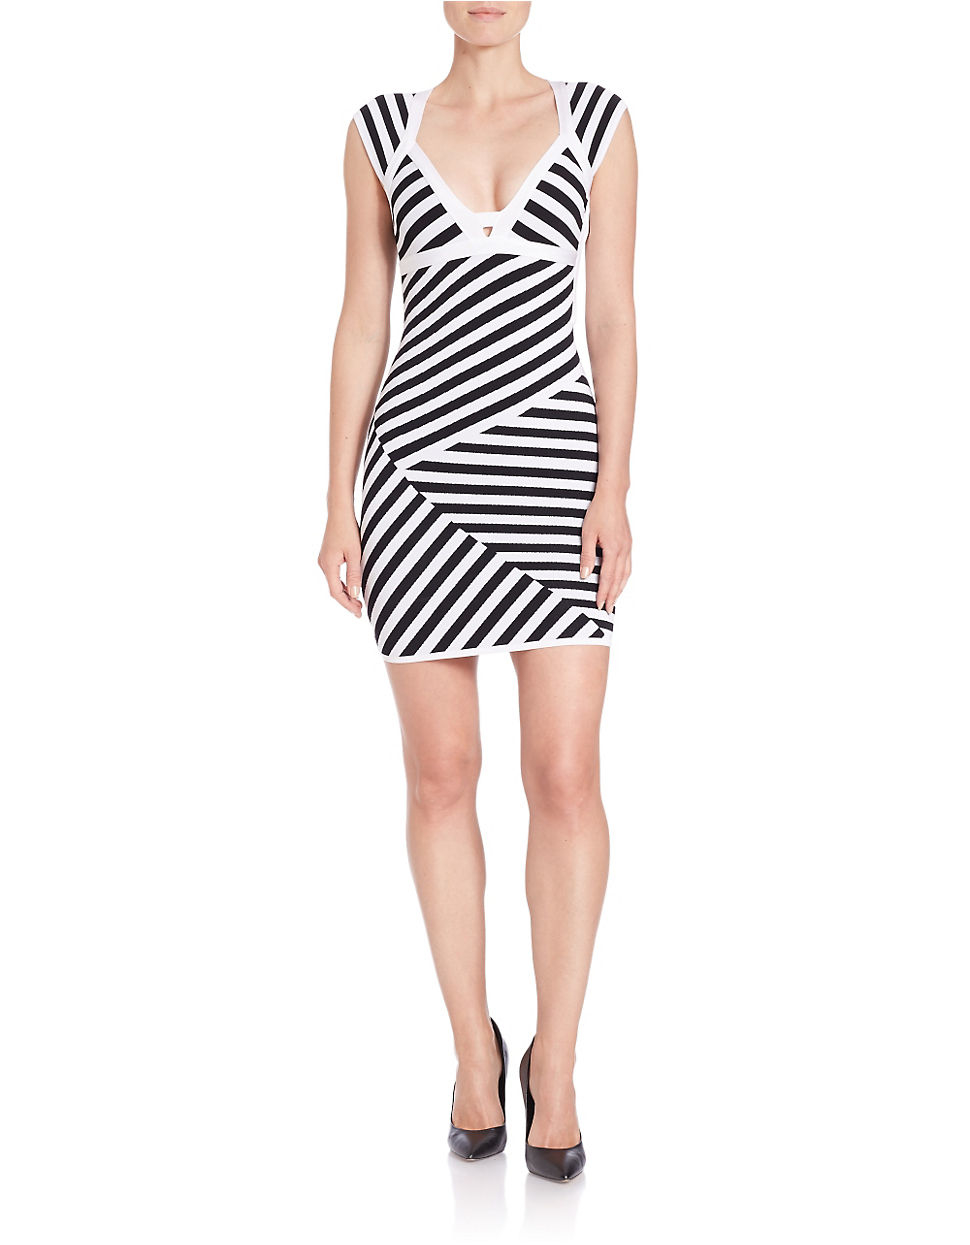 Guess striped bodycon dress taylor guelph store